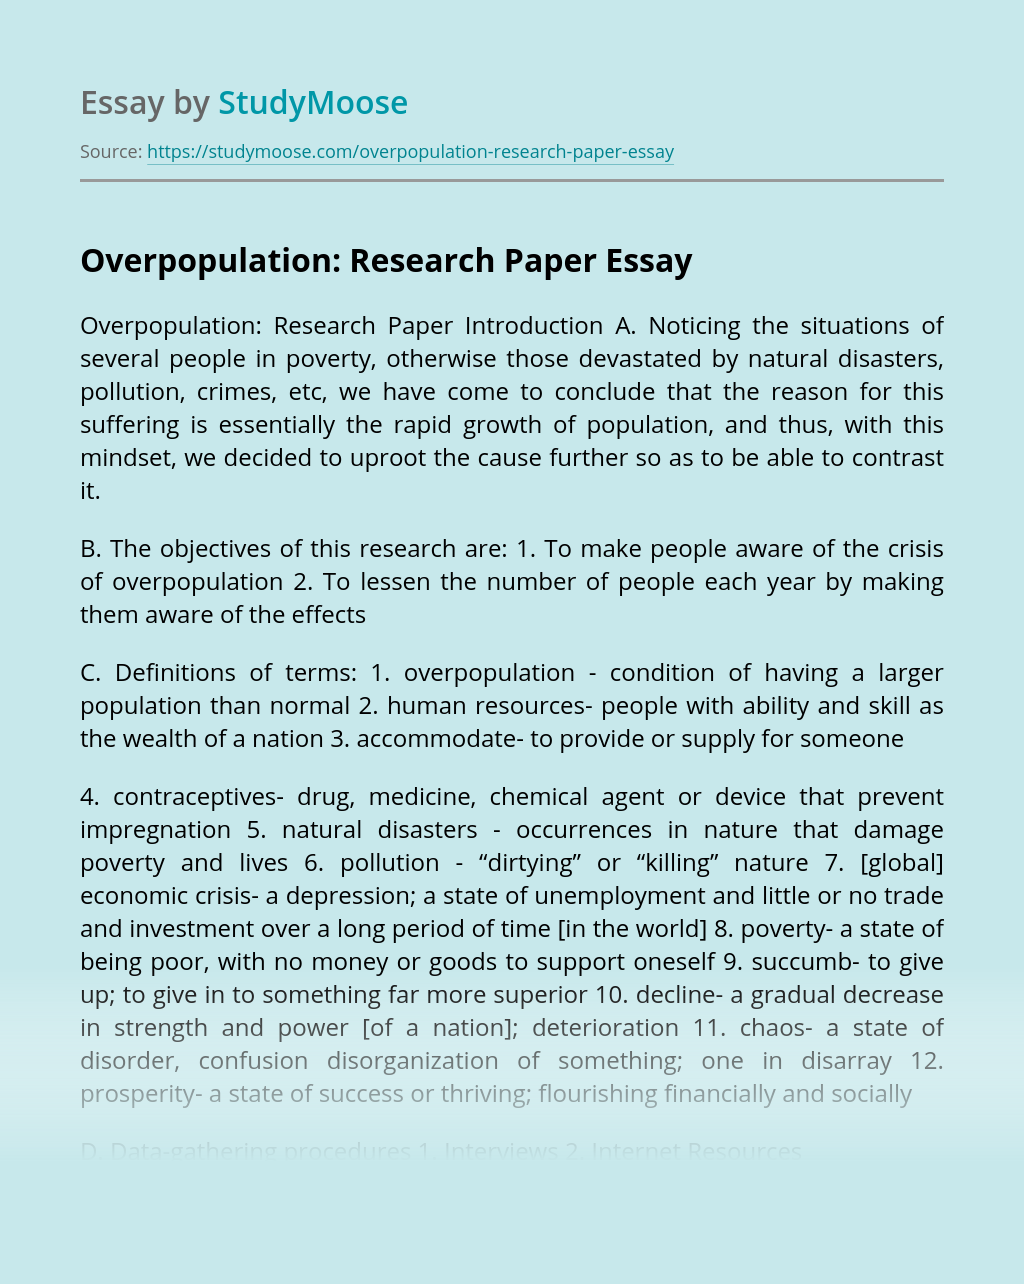 Overpopulation: Research Paper